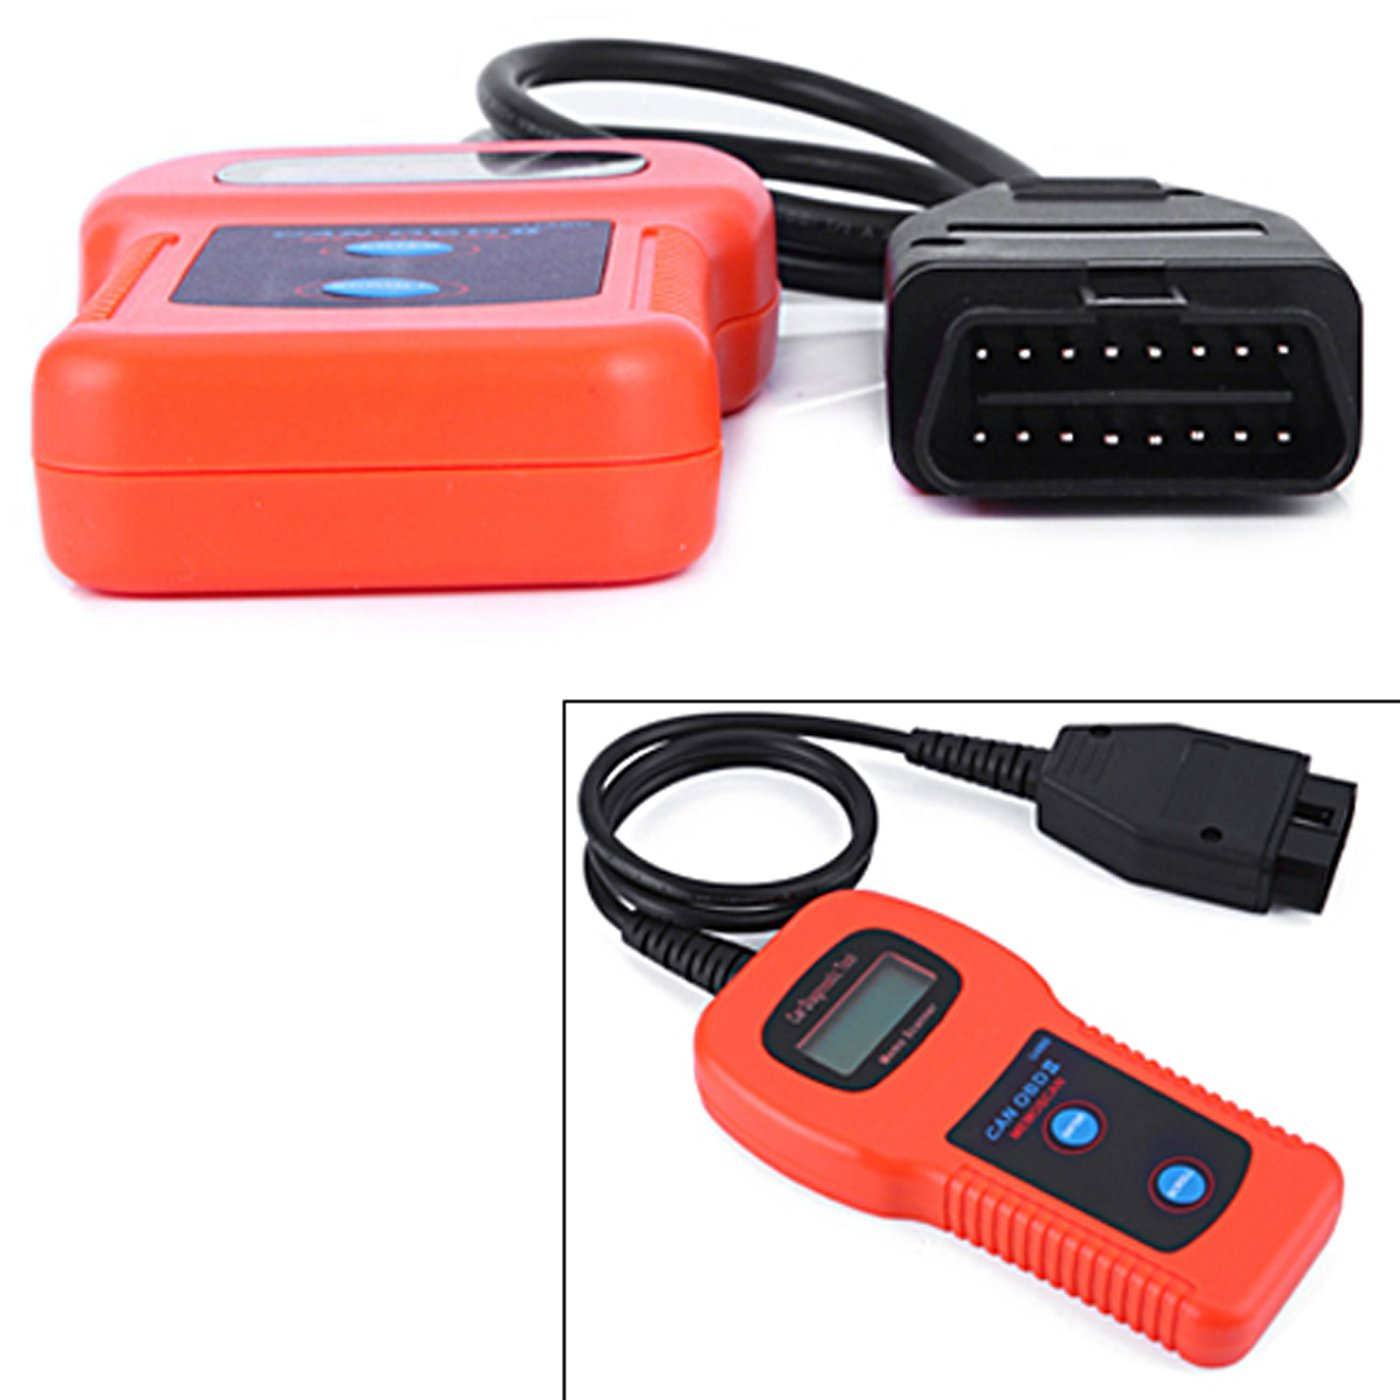 HDE U480 CAN-BUS OBD2 OBDII Car Scanner Universal Fault Code Reader Auto Diagnostics Tool Check Engine Light with LED Display by HDE (Image #2)